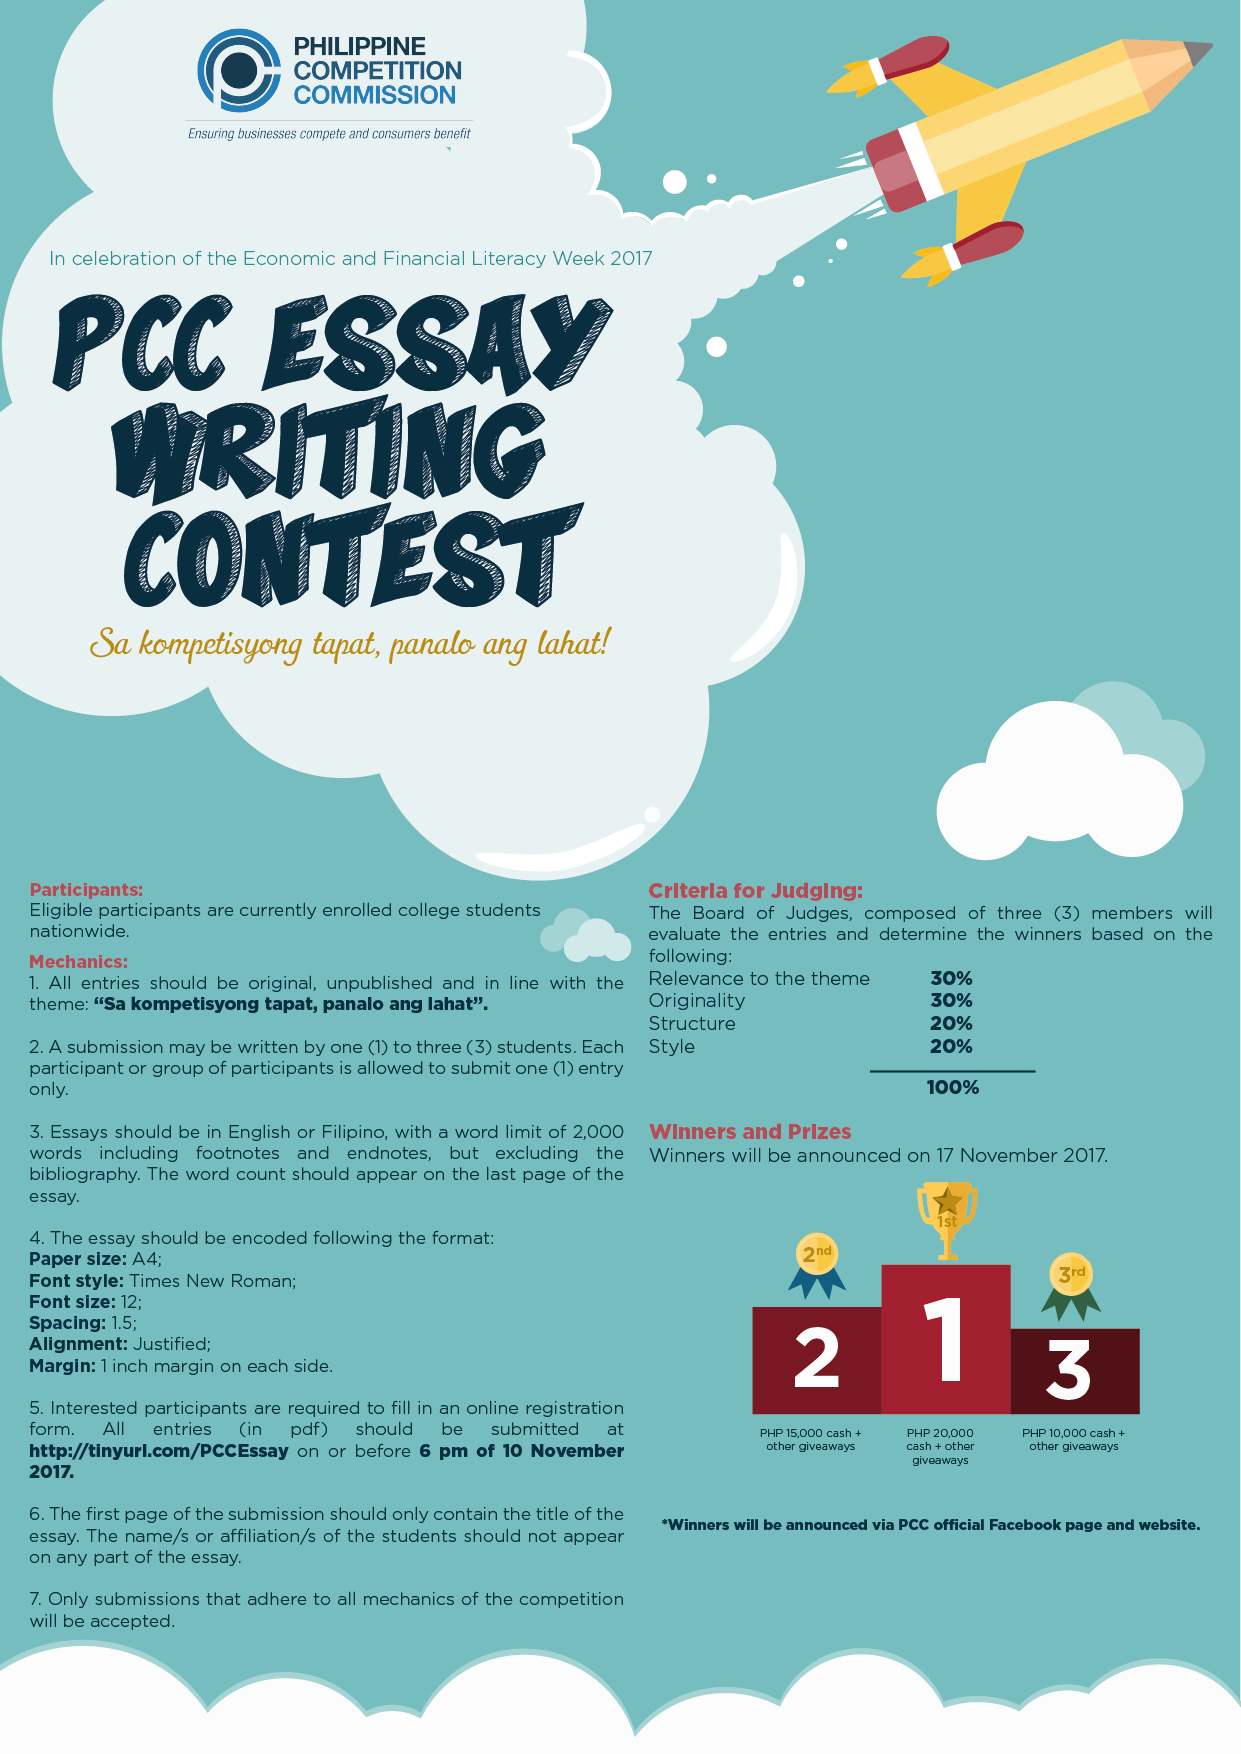 004 Essay Example Writing Contest Poster Final Incredible Competition For College Students By Essayhub Sample Mechanics Full